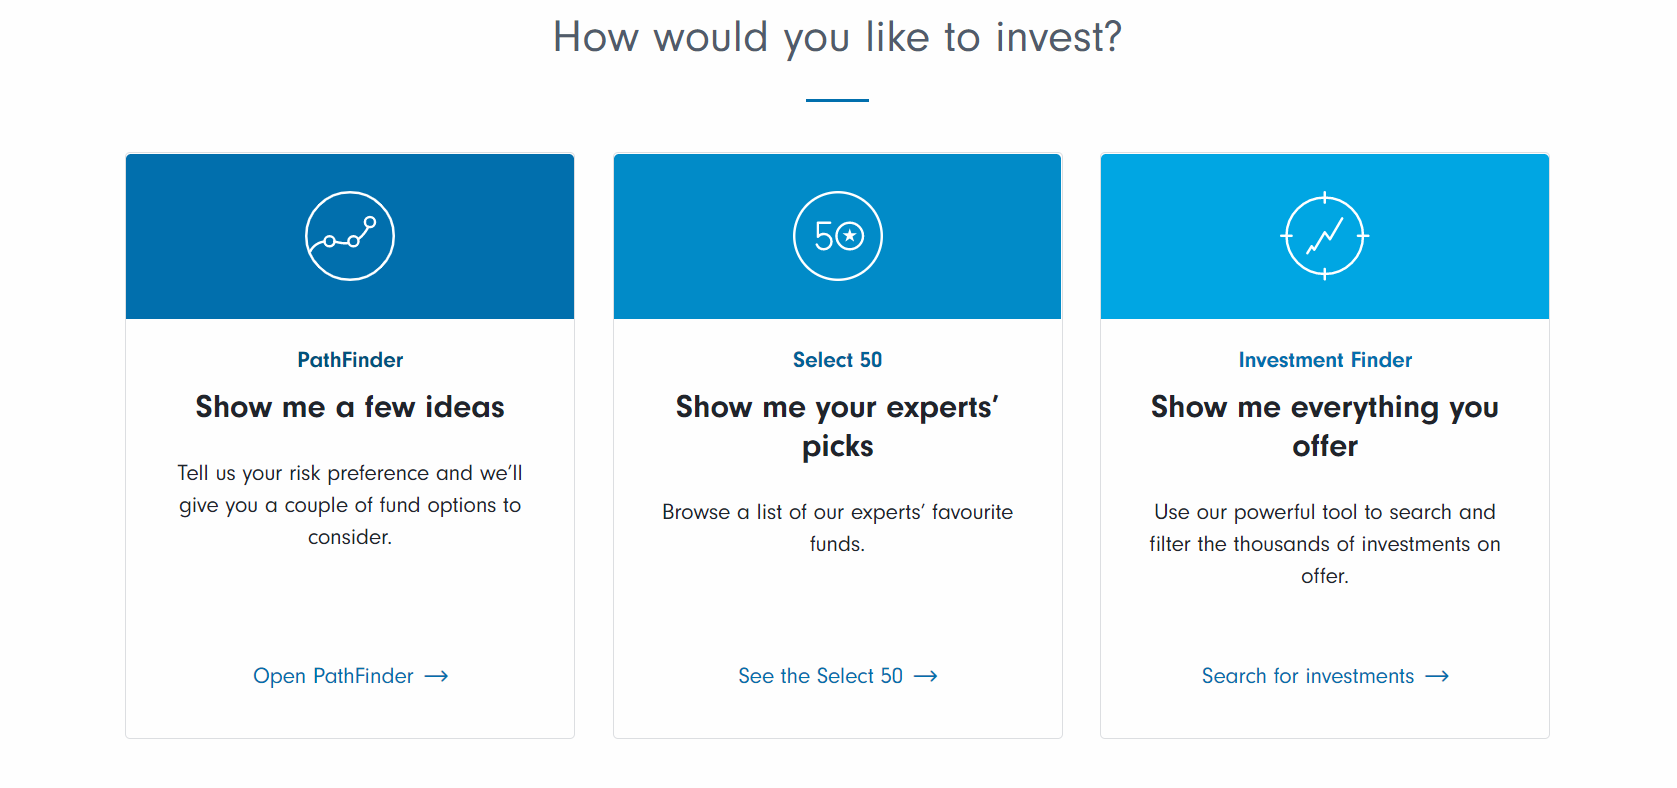 Fidelity offers you different ways to invest